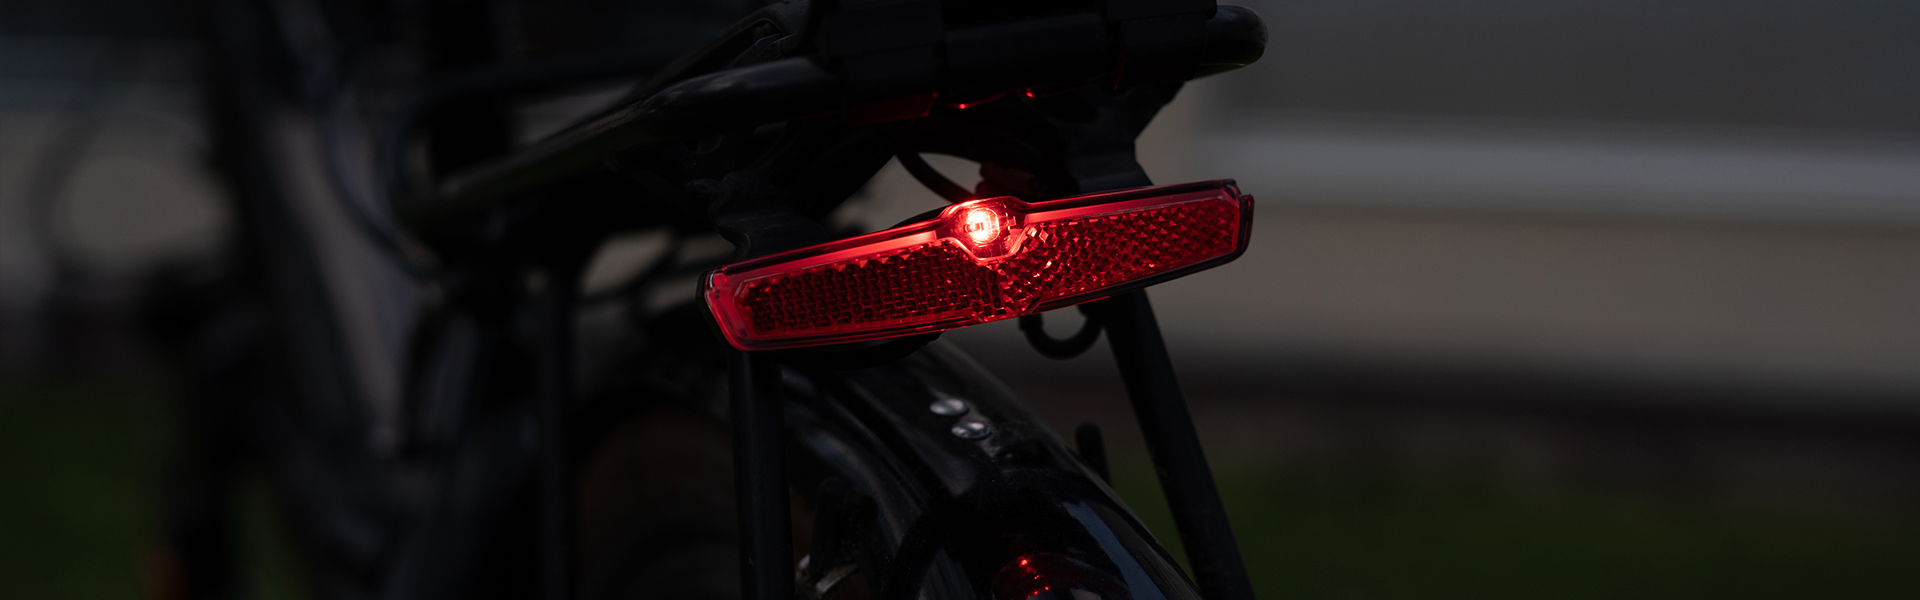 Sate-lite CREE ebike light  StVZO ISO6742-1 eletric bike tail light with StVZO Z ECE reflector mount on Carrier 6-48V